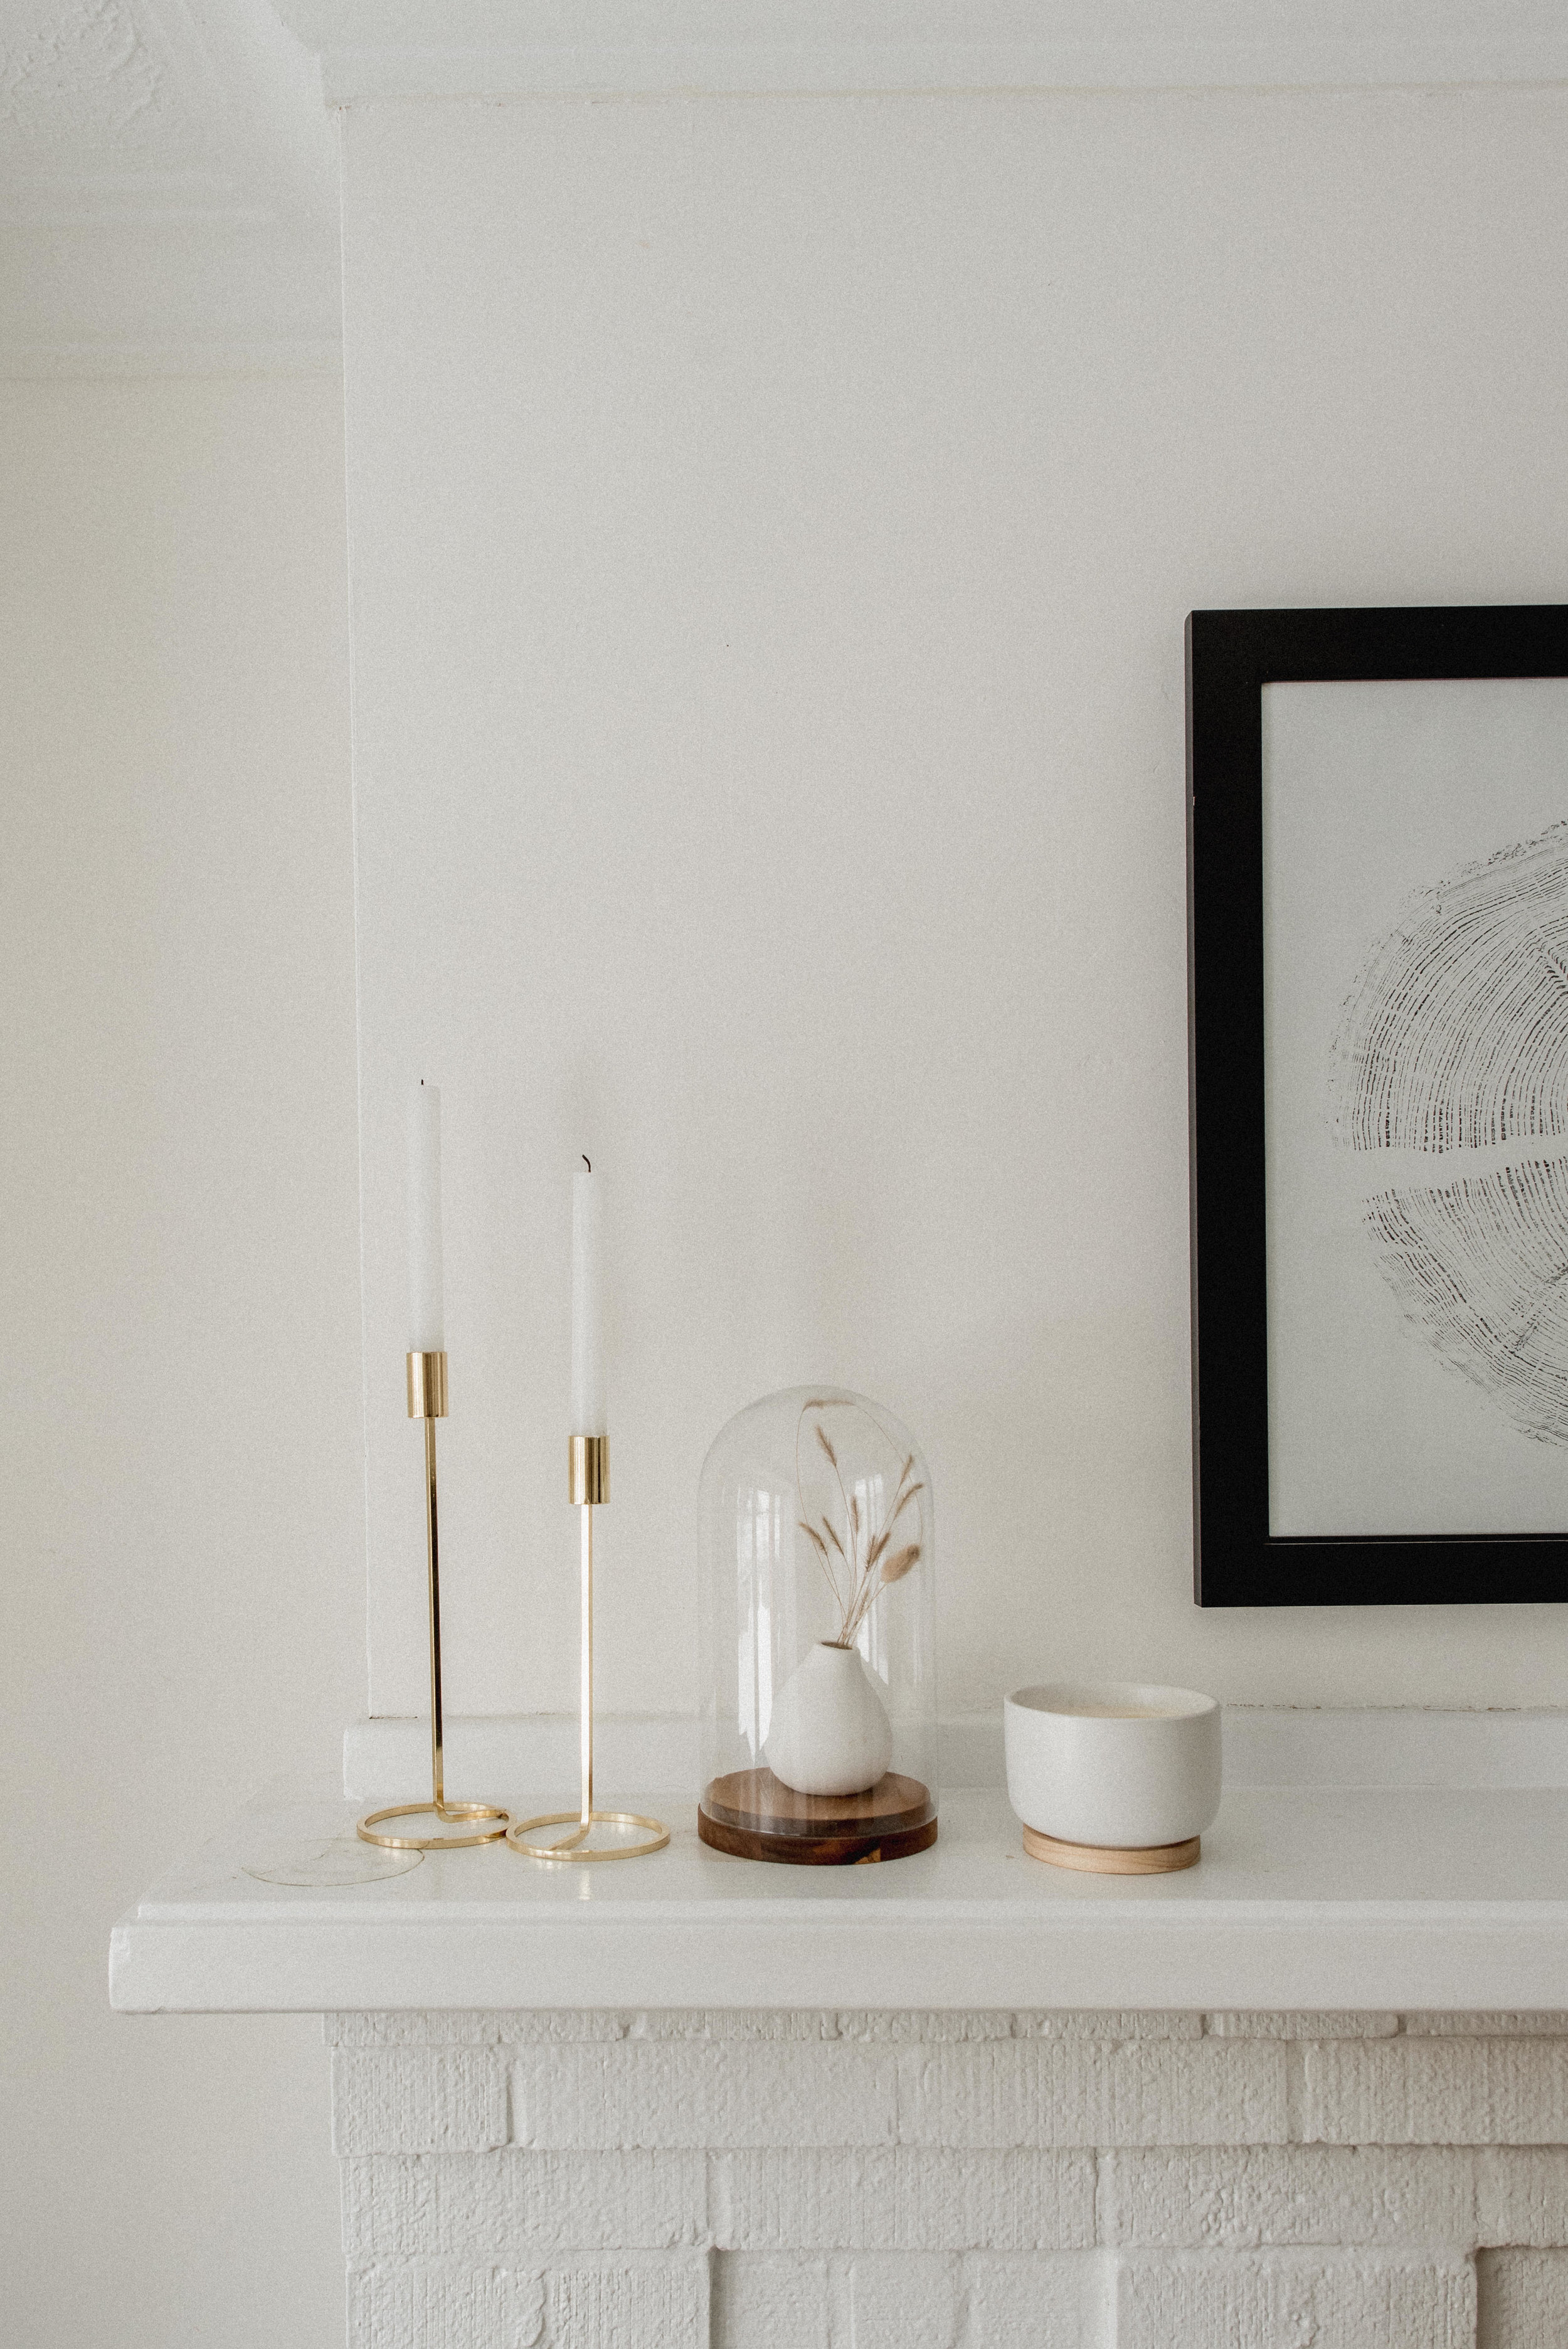 Simple minimalist mantle styling with candle holders